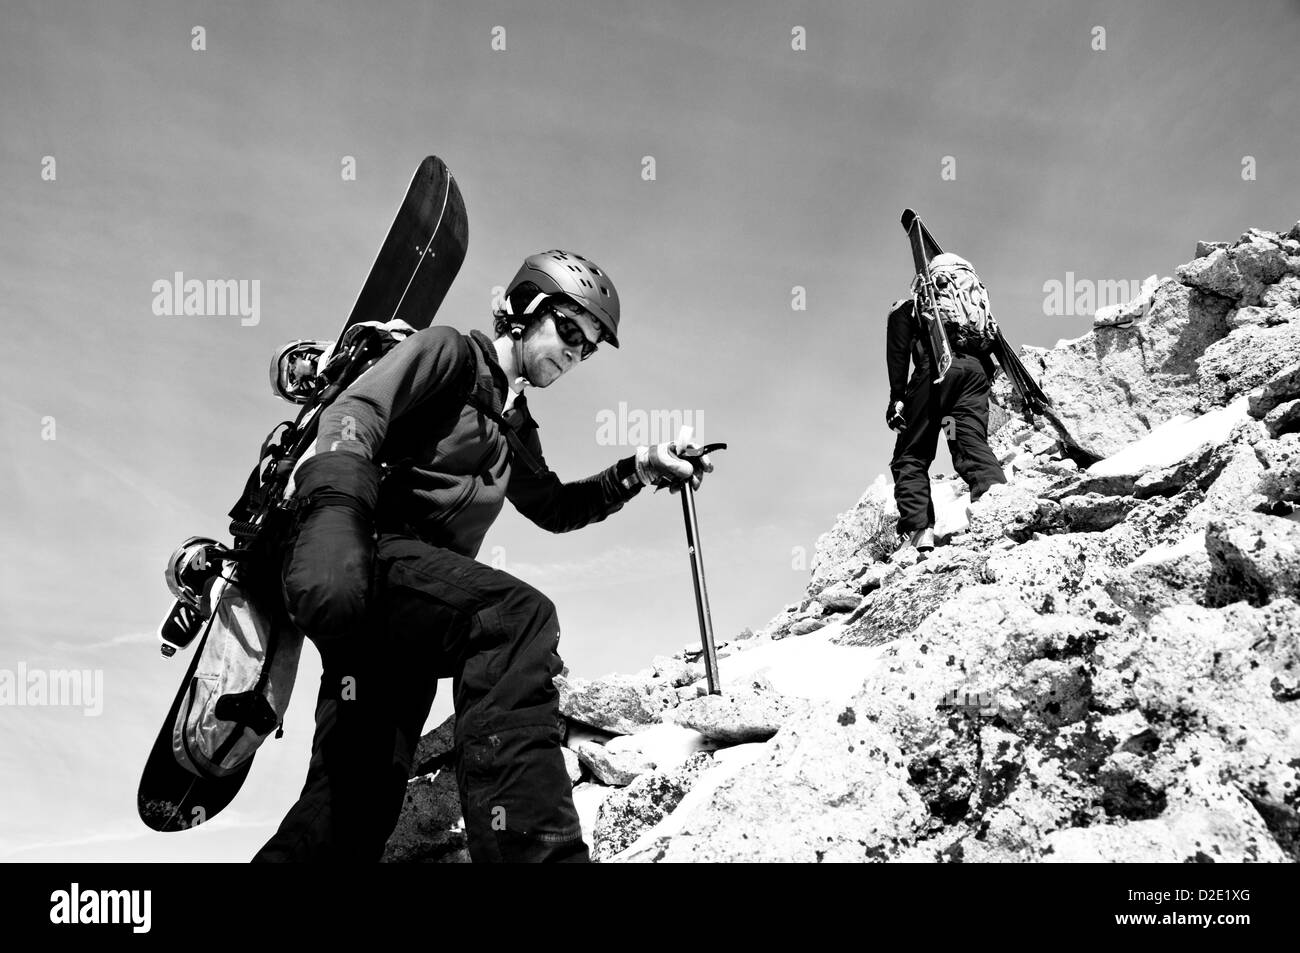 Snowboarder Climbing up a rocky ridge to ride down. - Stock Image